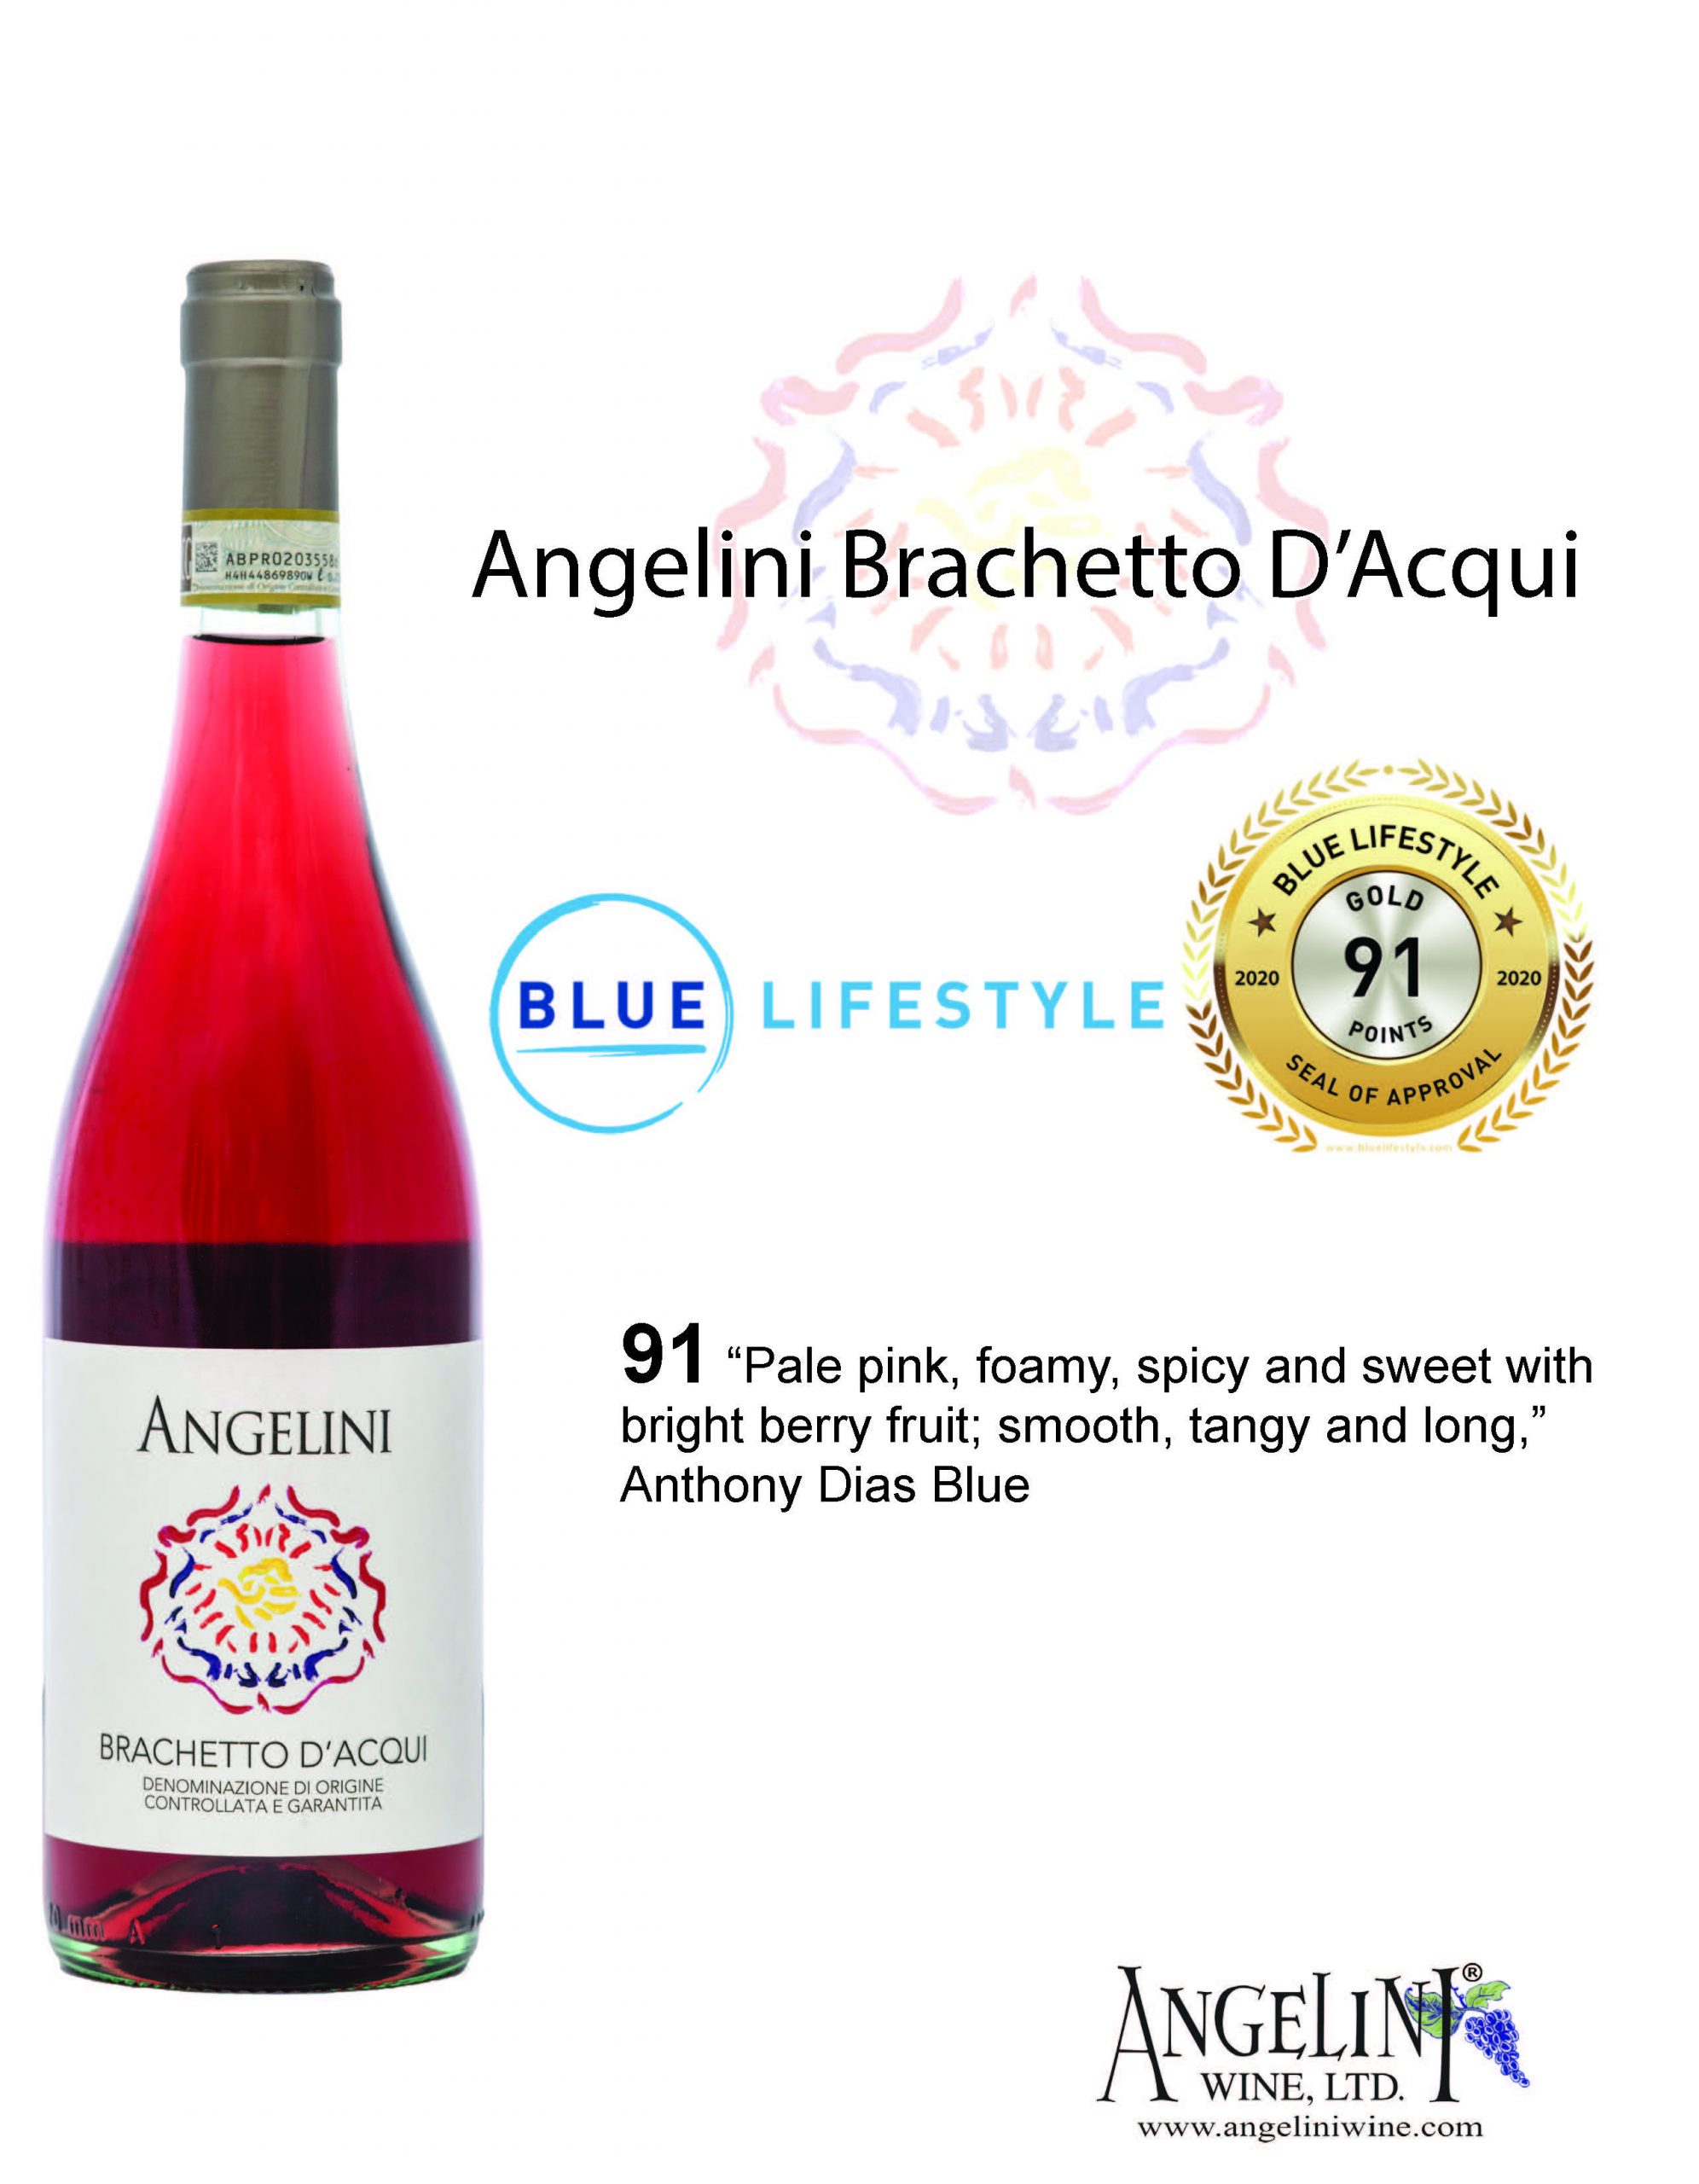 https://www.angeliniwine.com/wp-content/uploads/2021/03/Angelini-Brachetto-BL-91-scaled.jpg